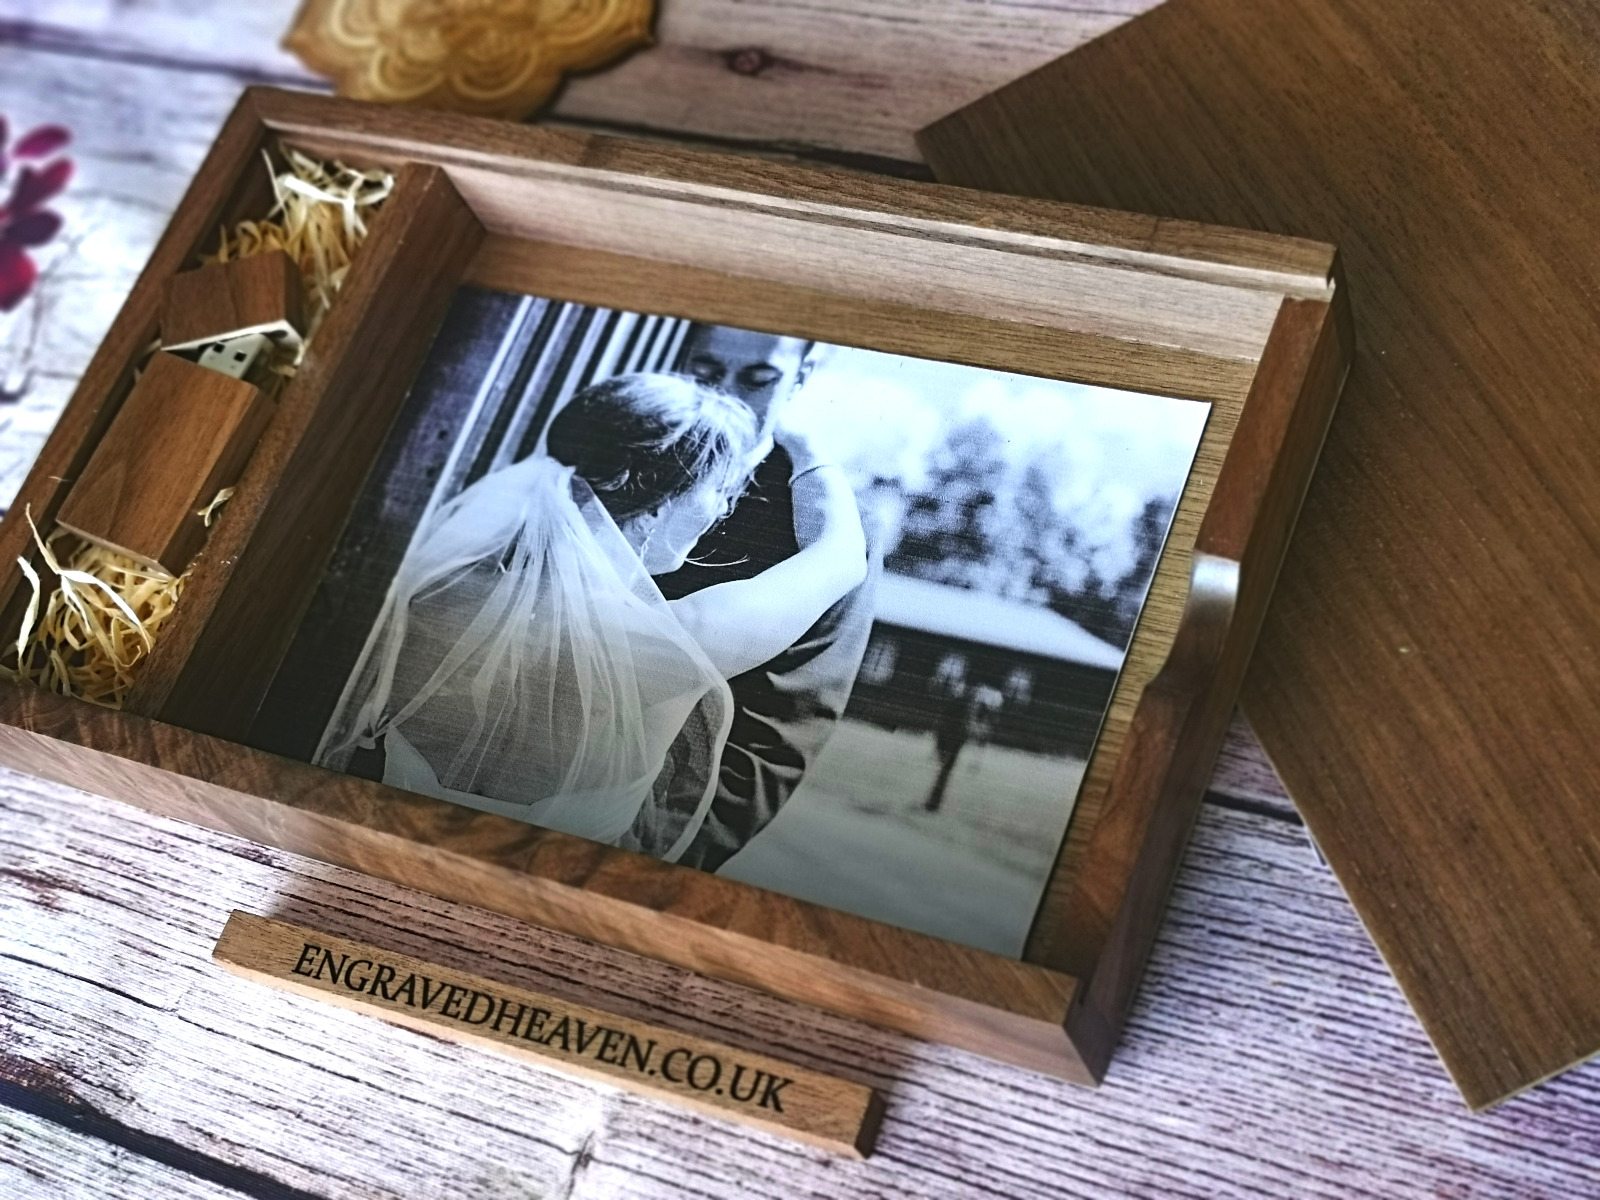 Personalised wooden photo album box for 7x5 inch photo prints with usb stick